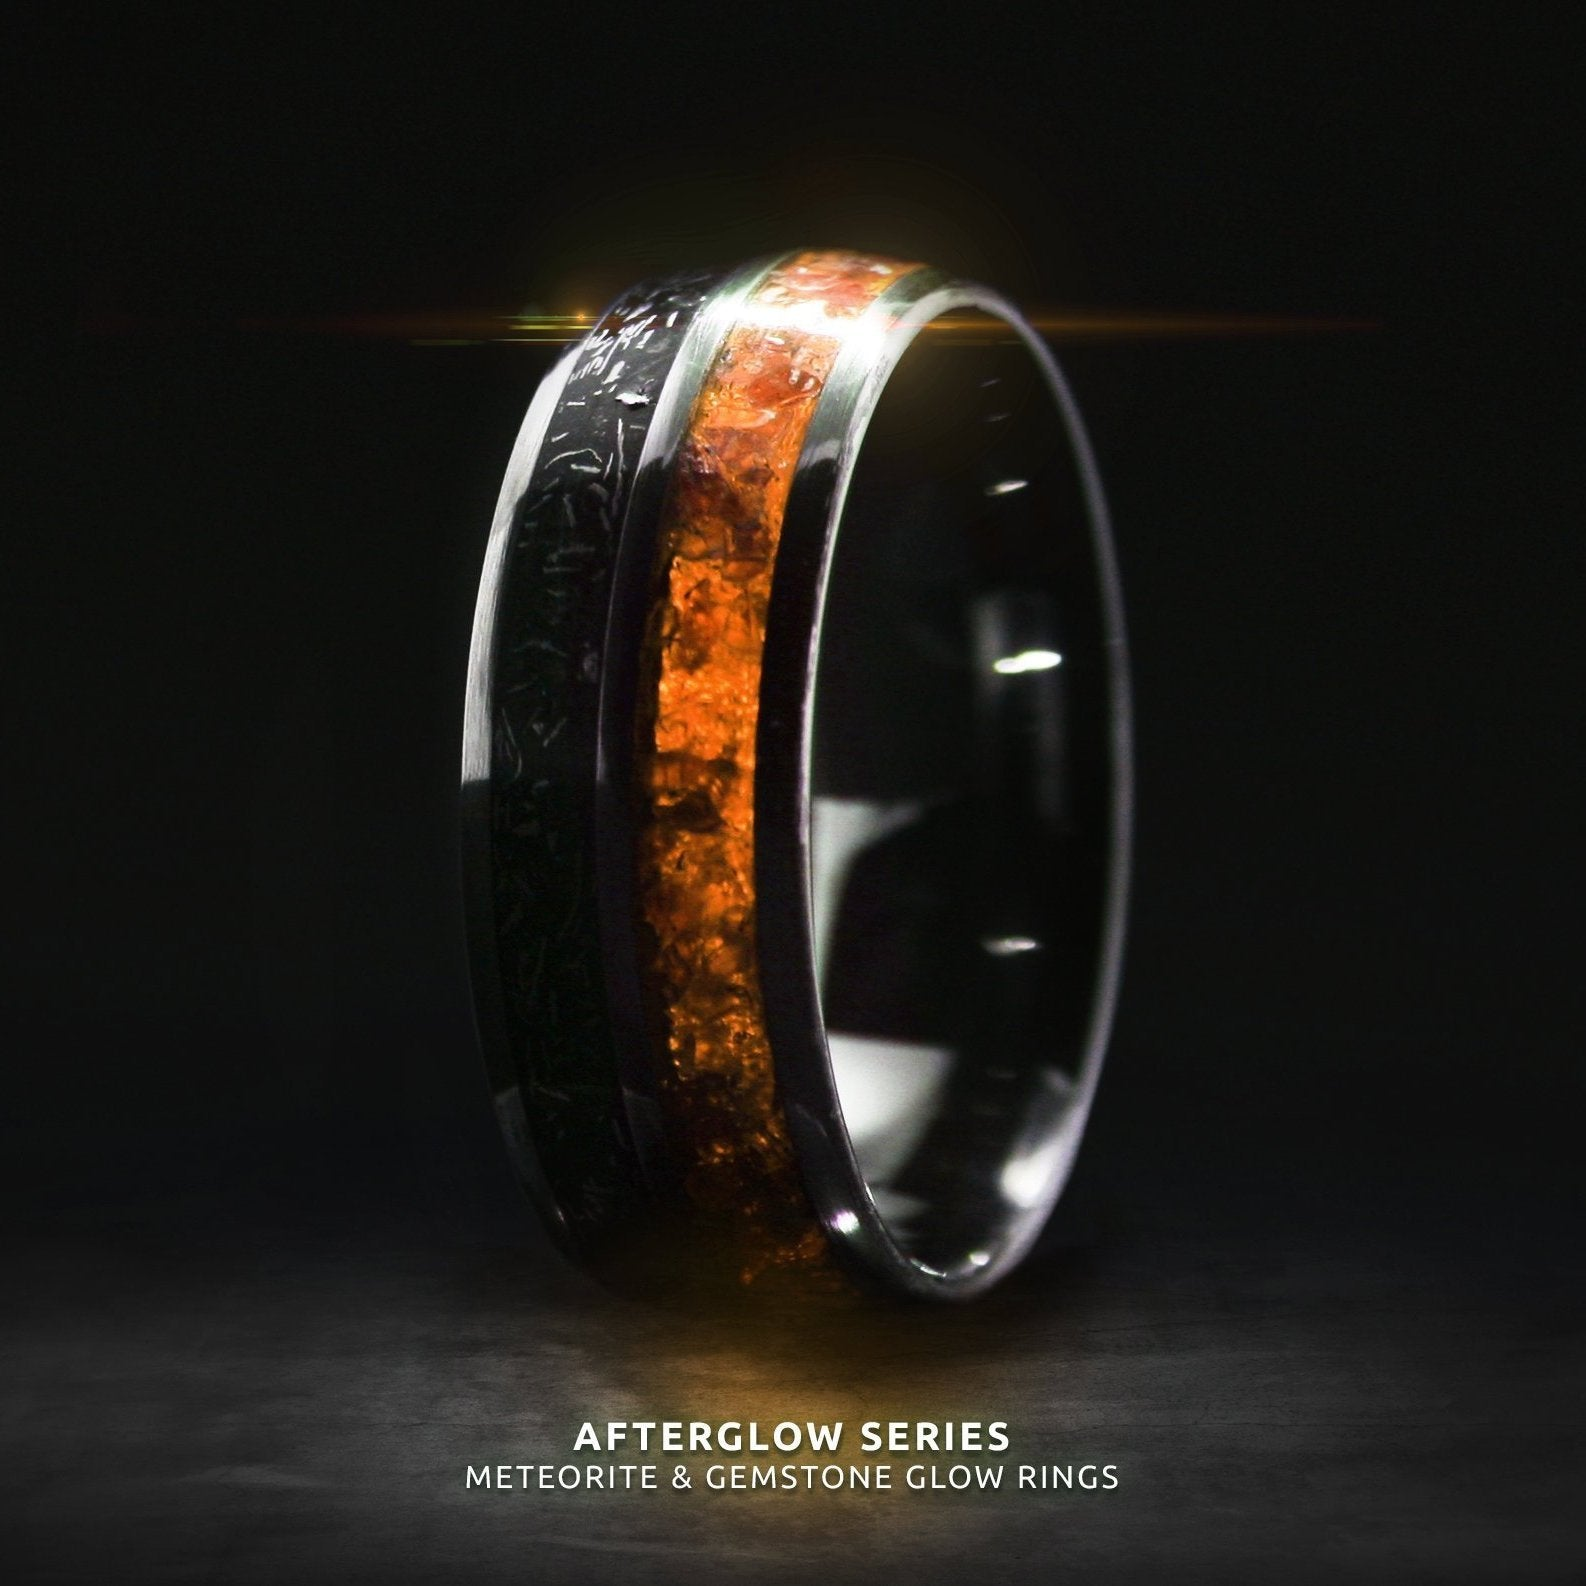 Afterglow Series Campo Del Cielo Meteorite Orange Glow Ring